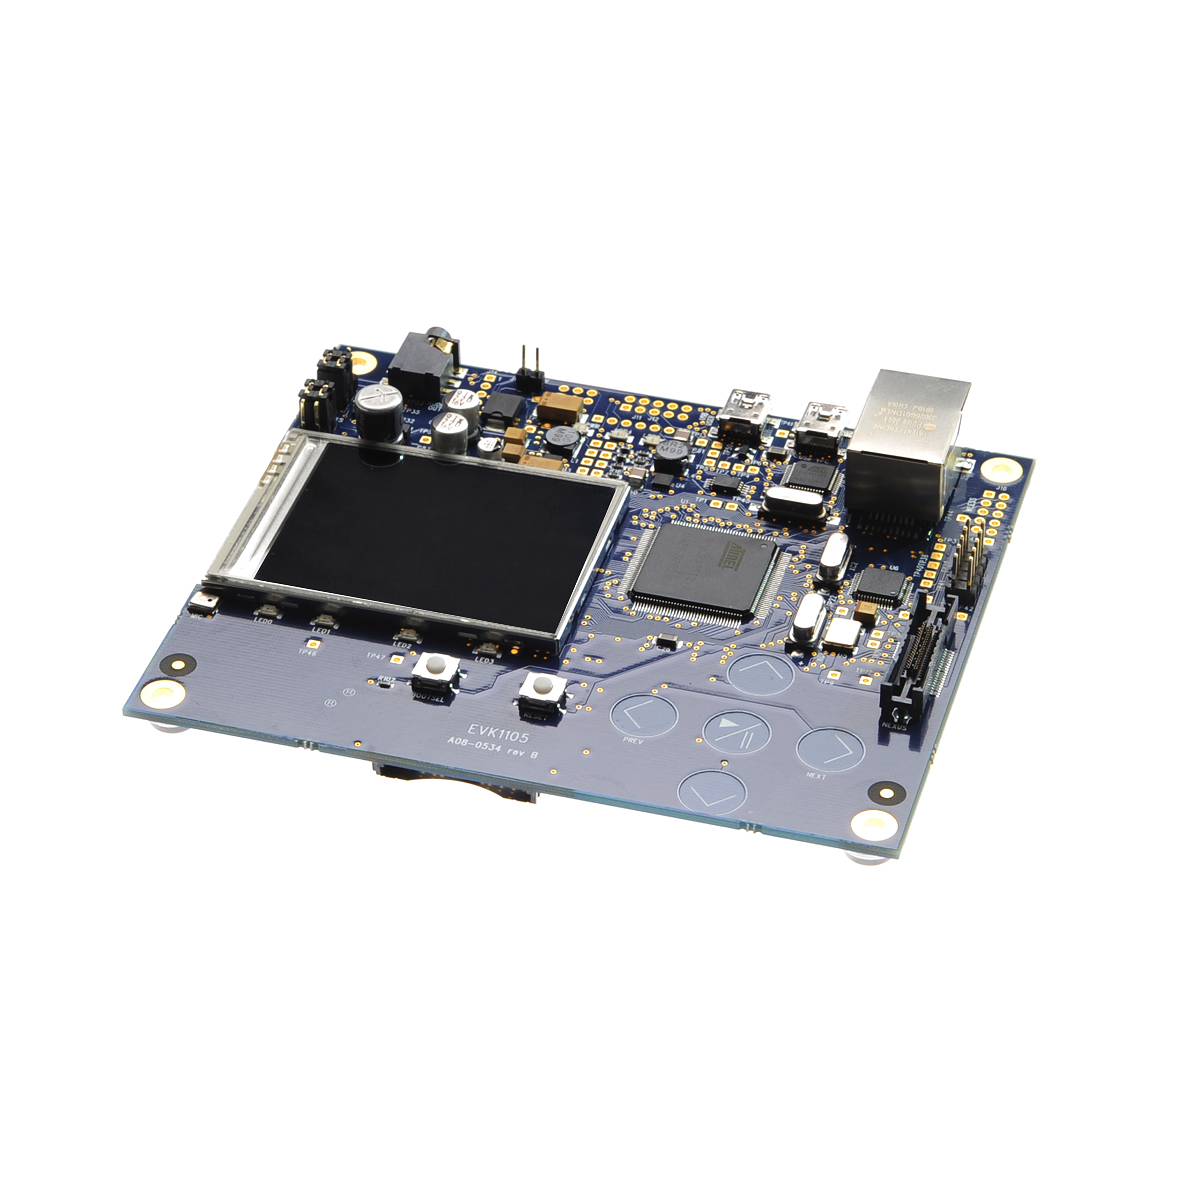 Mplabx Store Evas Are Extensive Printedcircuit Board Pcb Networks That Contain The Kit Demonstrates 32 Bit Avr Microcontroller In Hi Fi Audio Decoding And Streaming Applications Contains Reference Hardware Software For